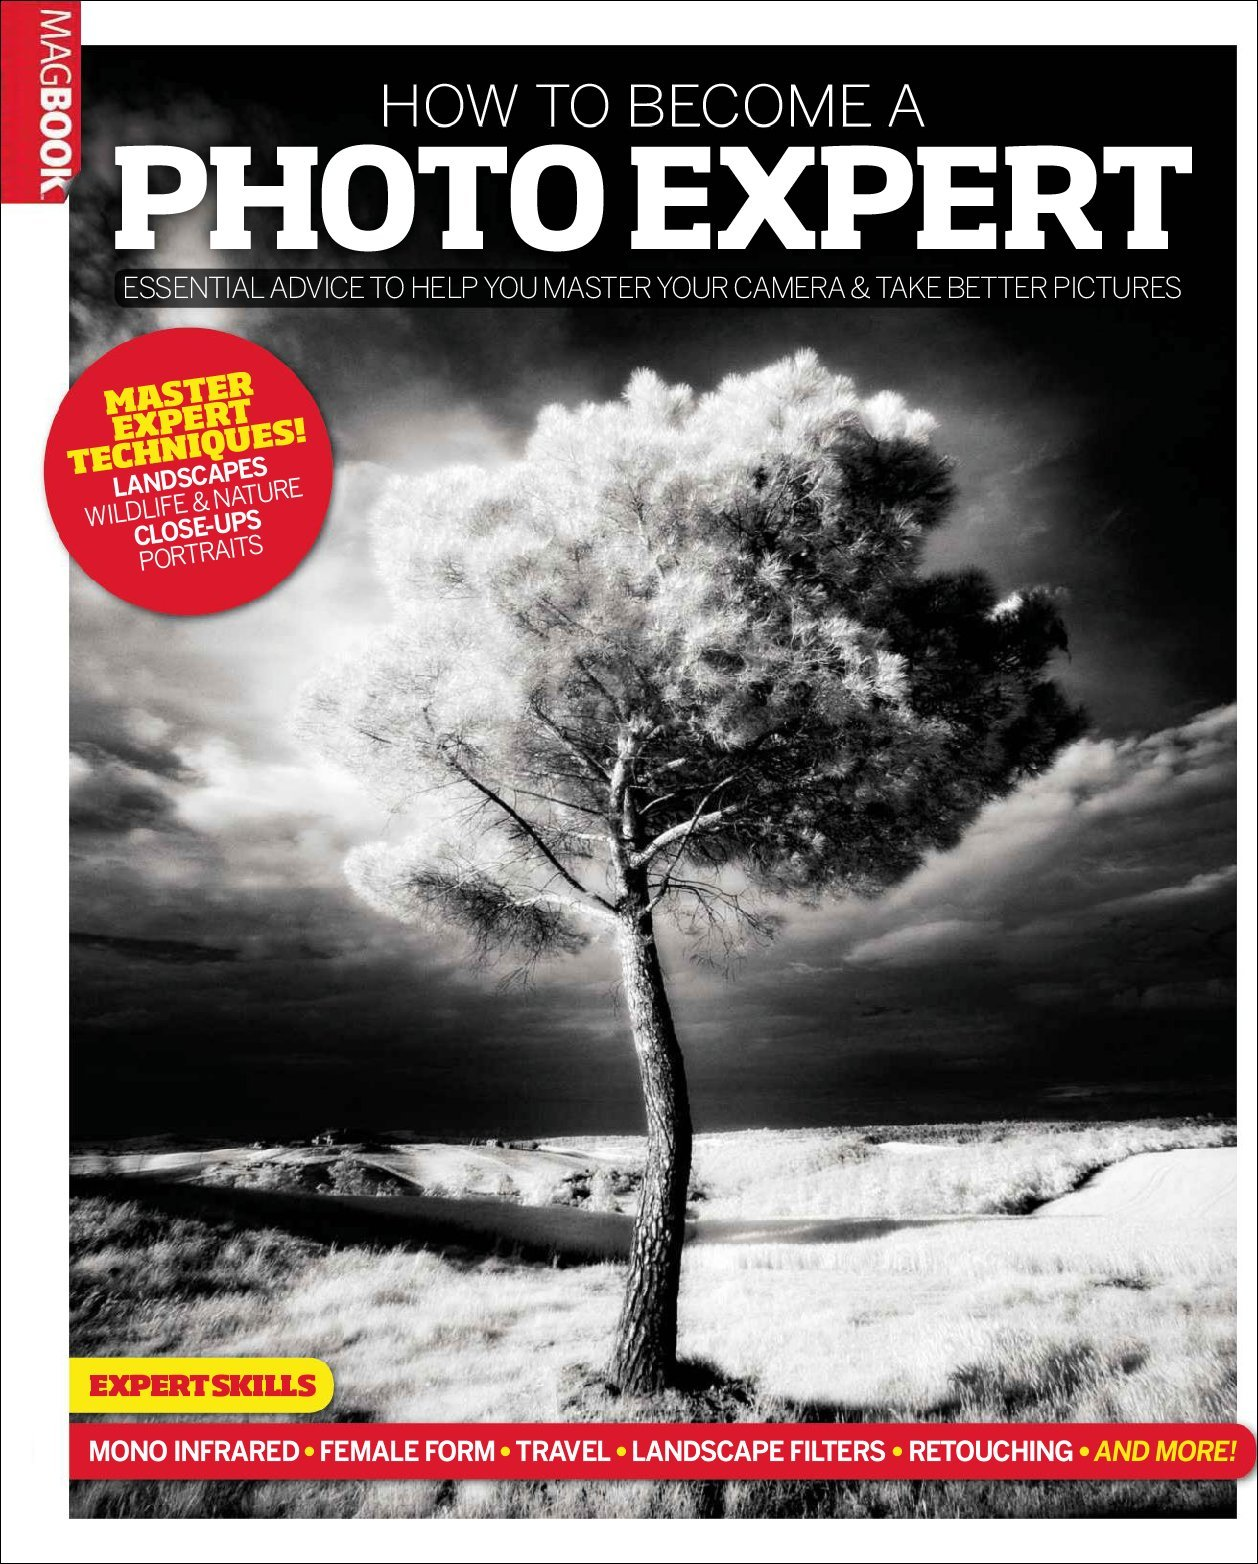 How to become a photo expert Digital